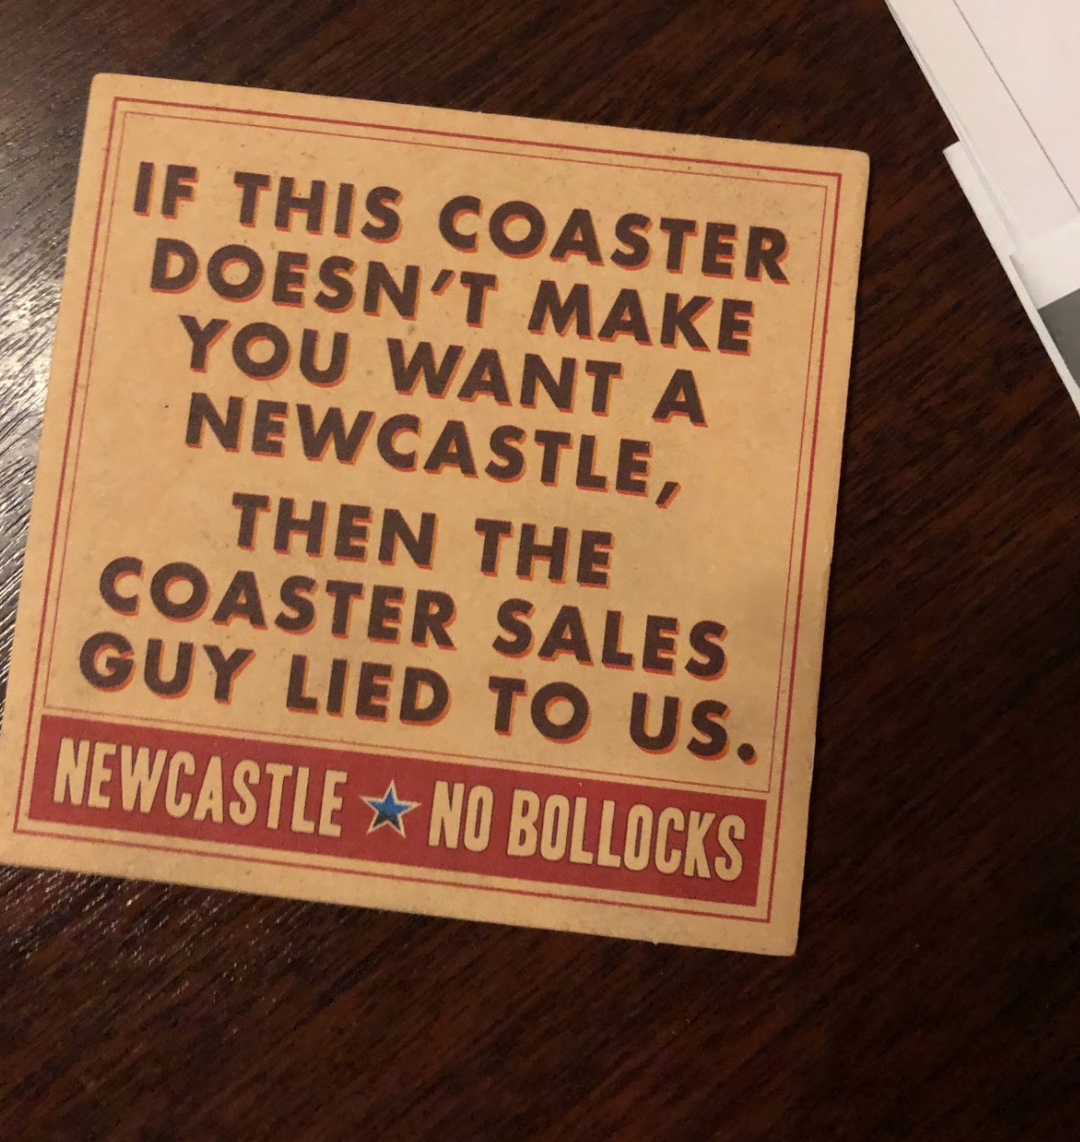 Great coaster that makes you buy a Newcastle.